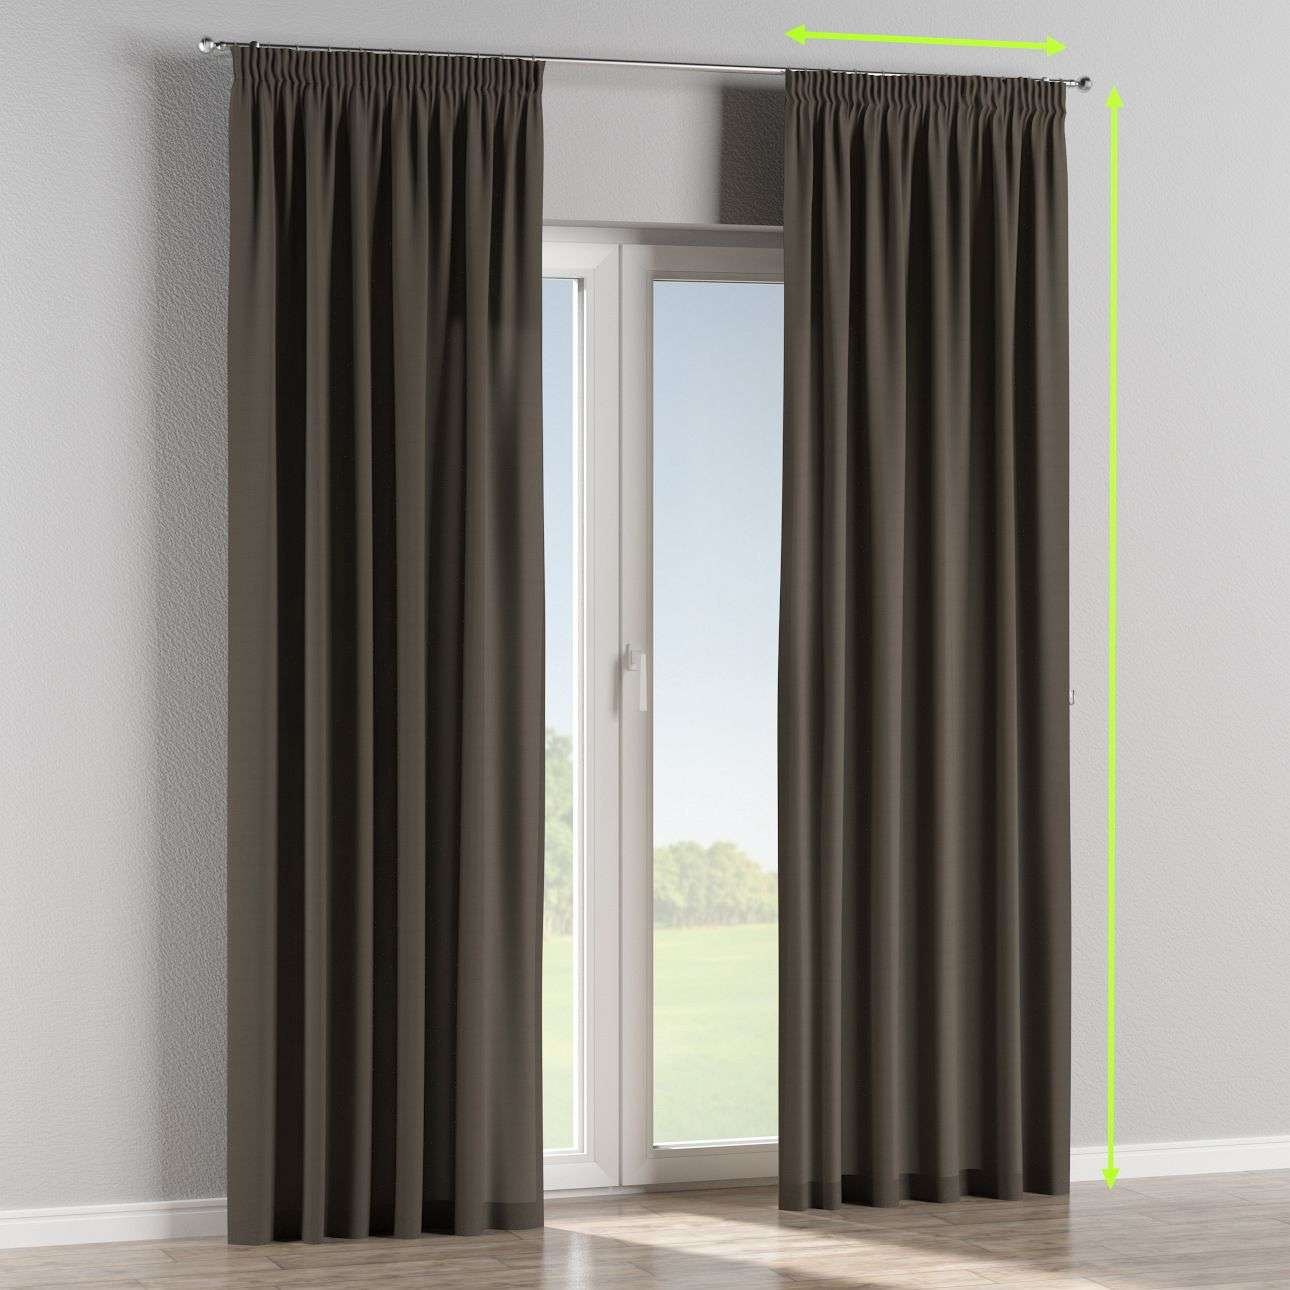 Pencil pleat curtains in collection Cotton Panama, fabric: 702-08